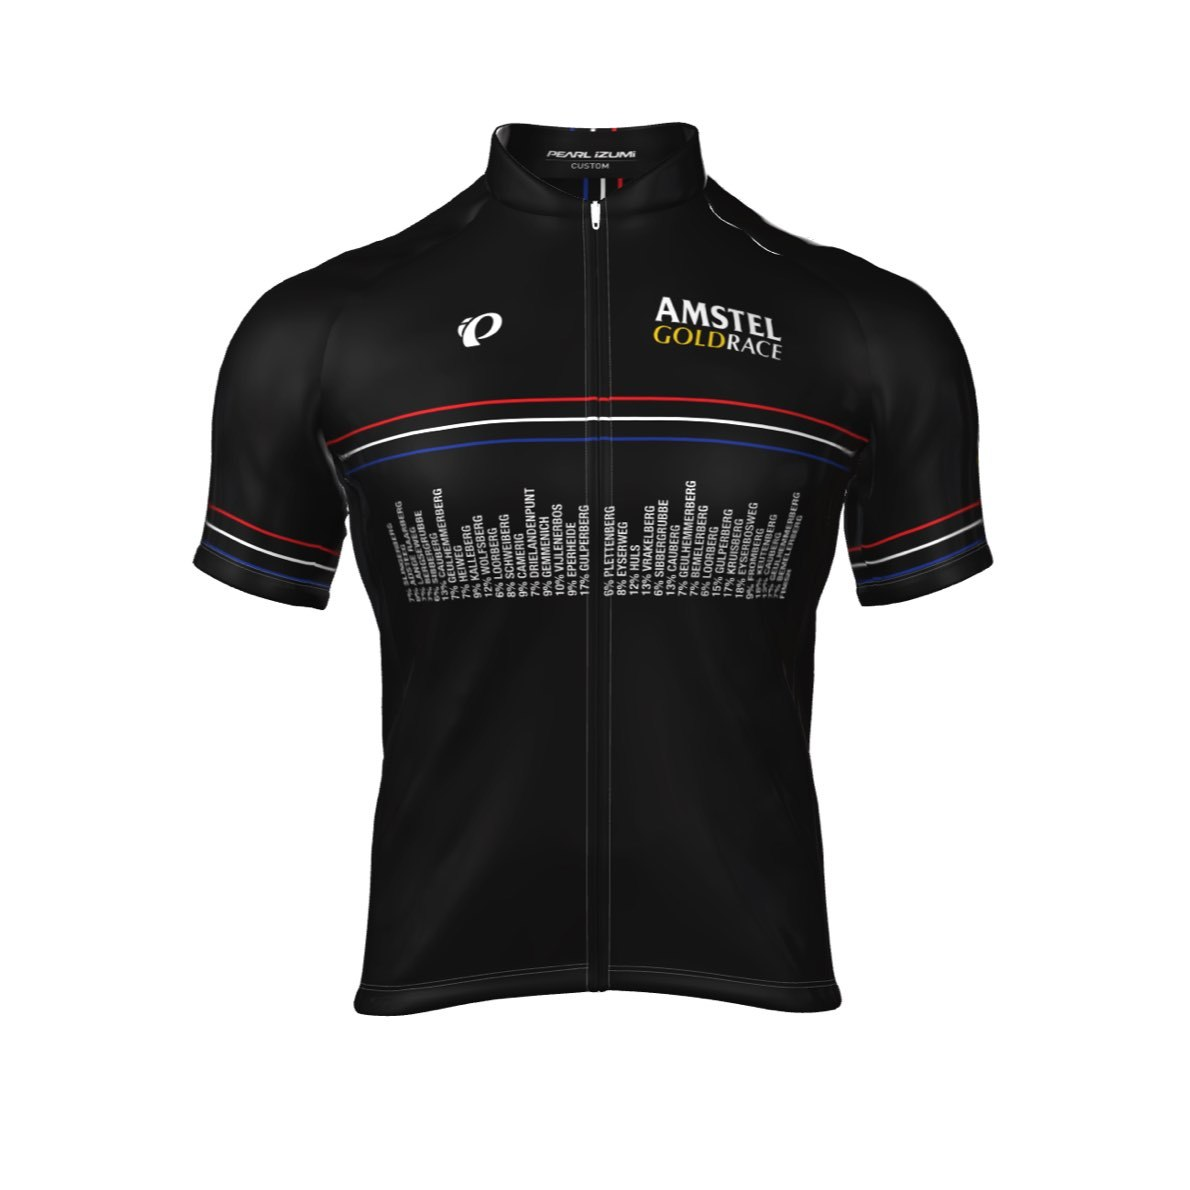 Amstel Gold Race 2019 Heren Fietsshirt